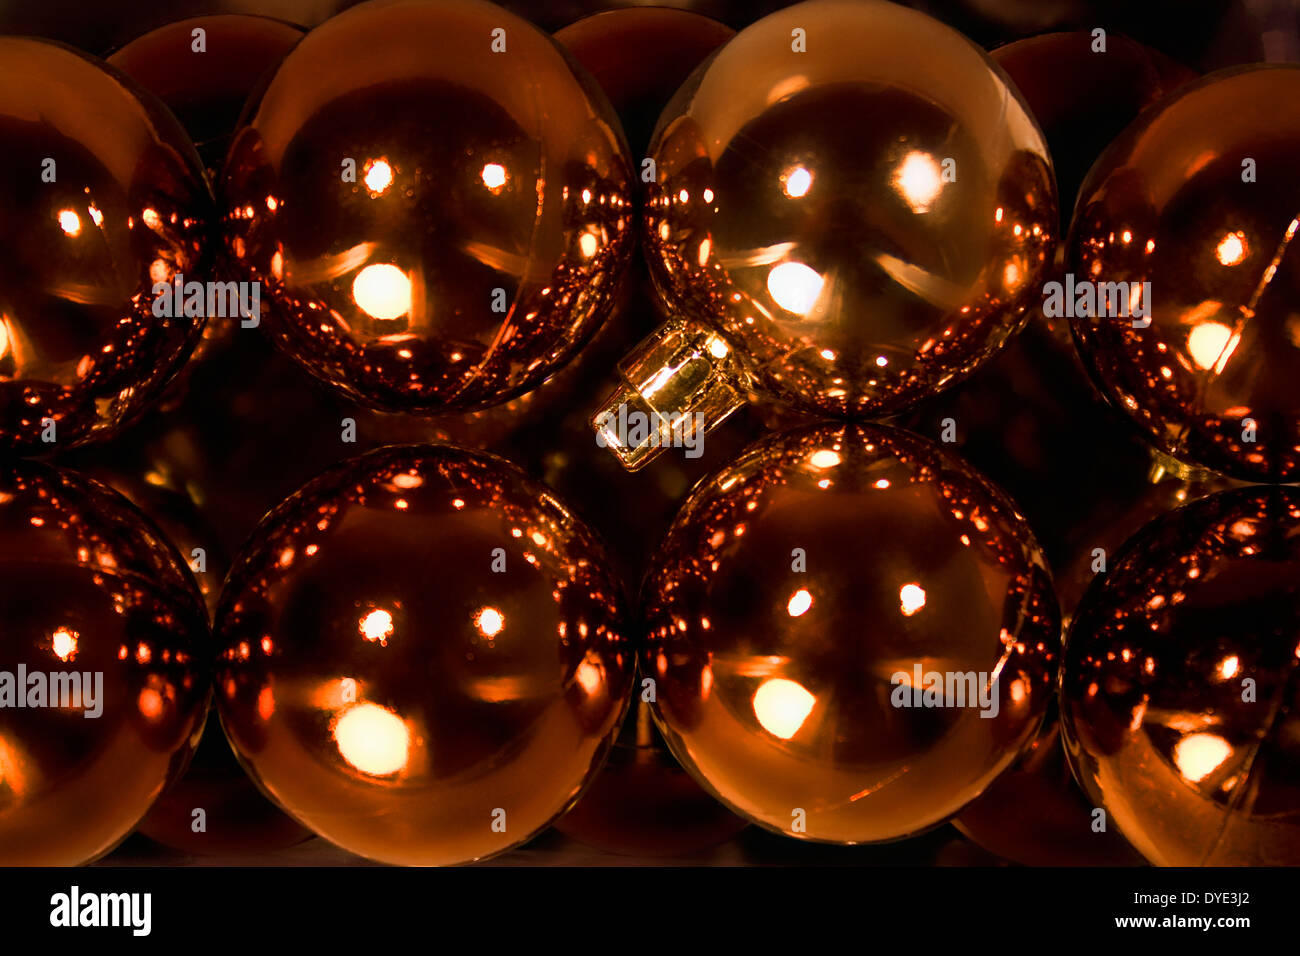 Close Up Shot Of Copper Colour Christmas Tree Baubles